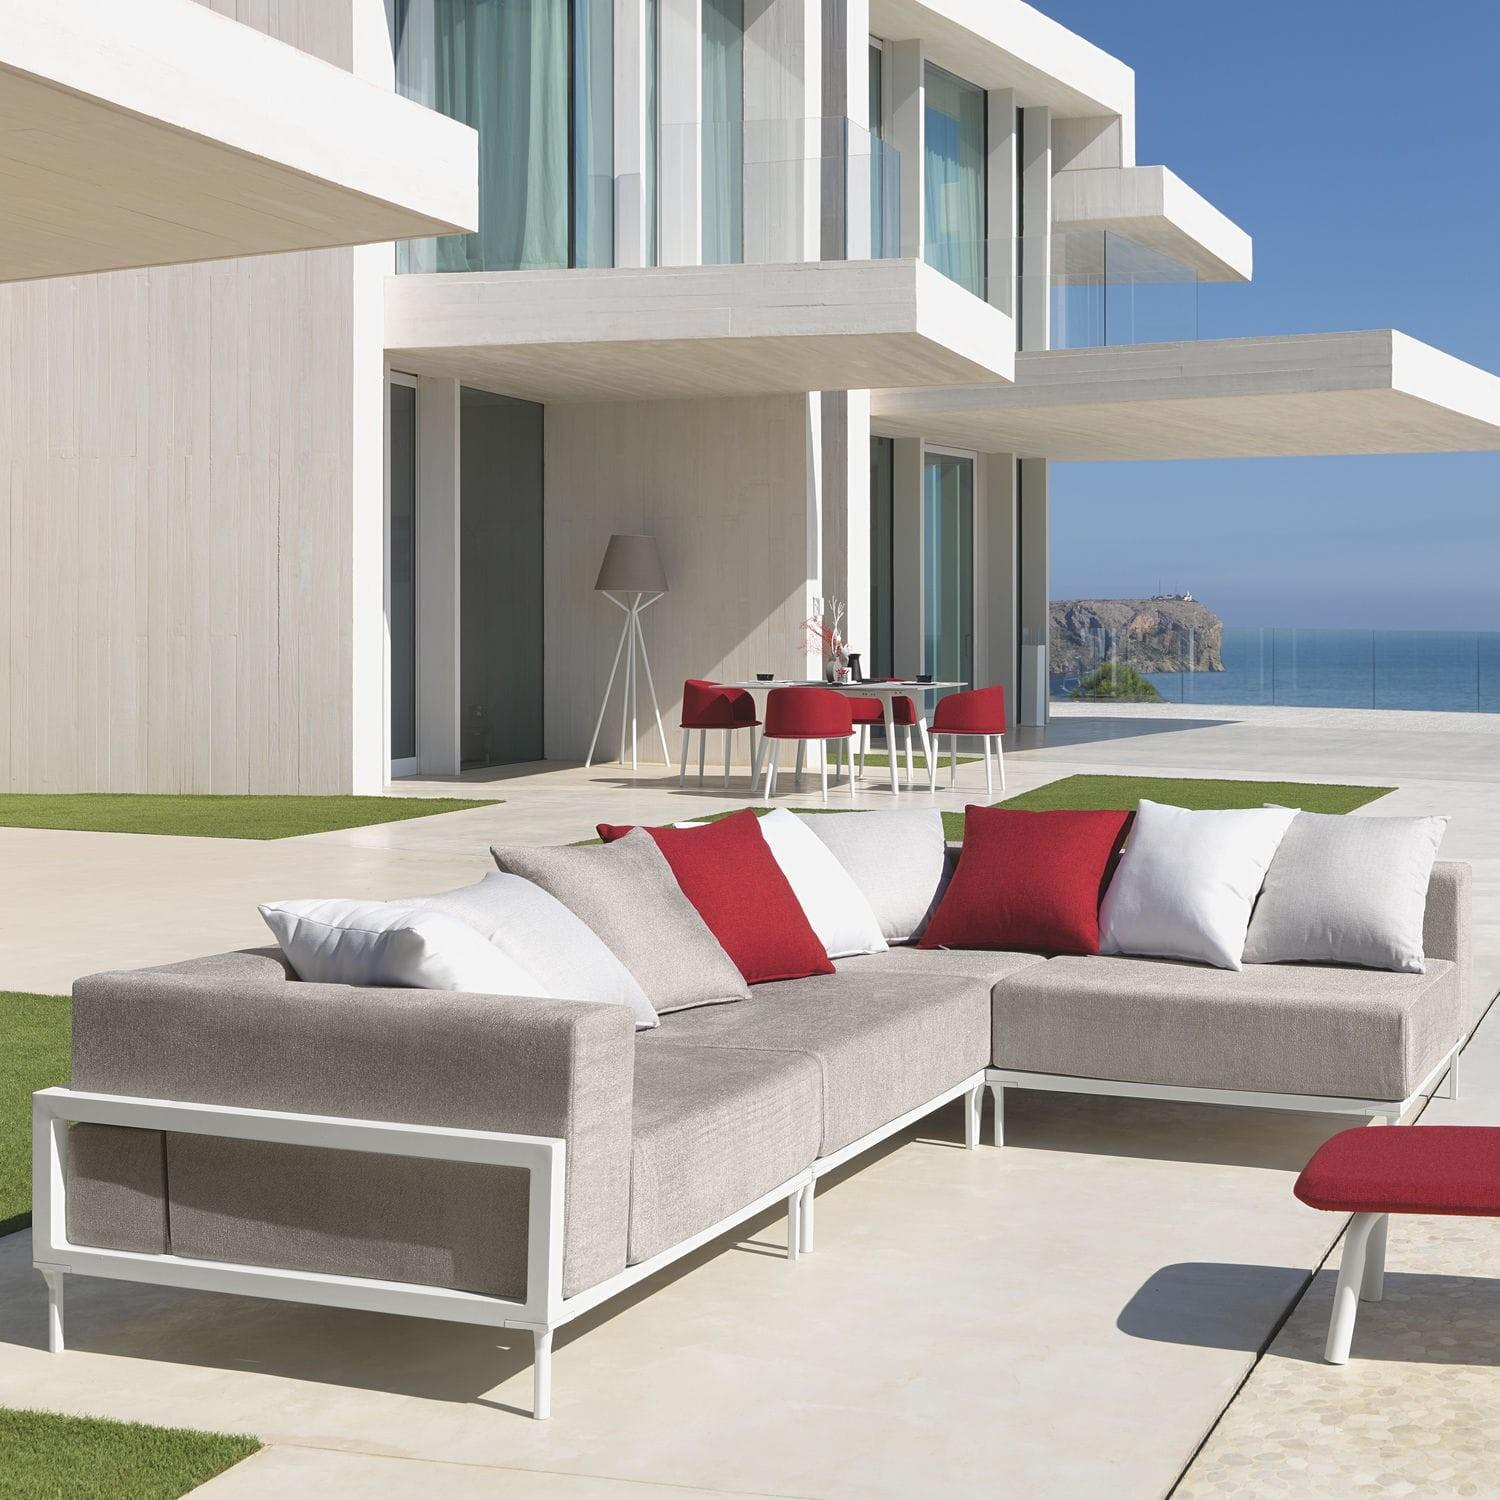 Corner Sofa Modular Contemporary Garden 247 Design Chill